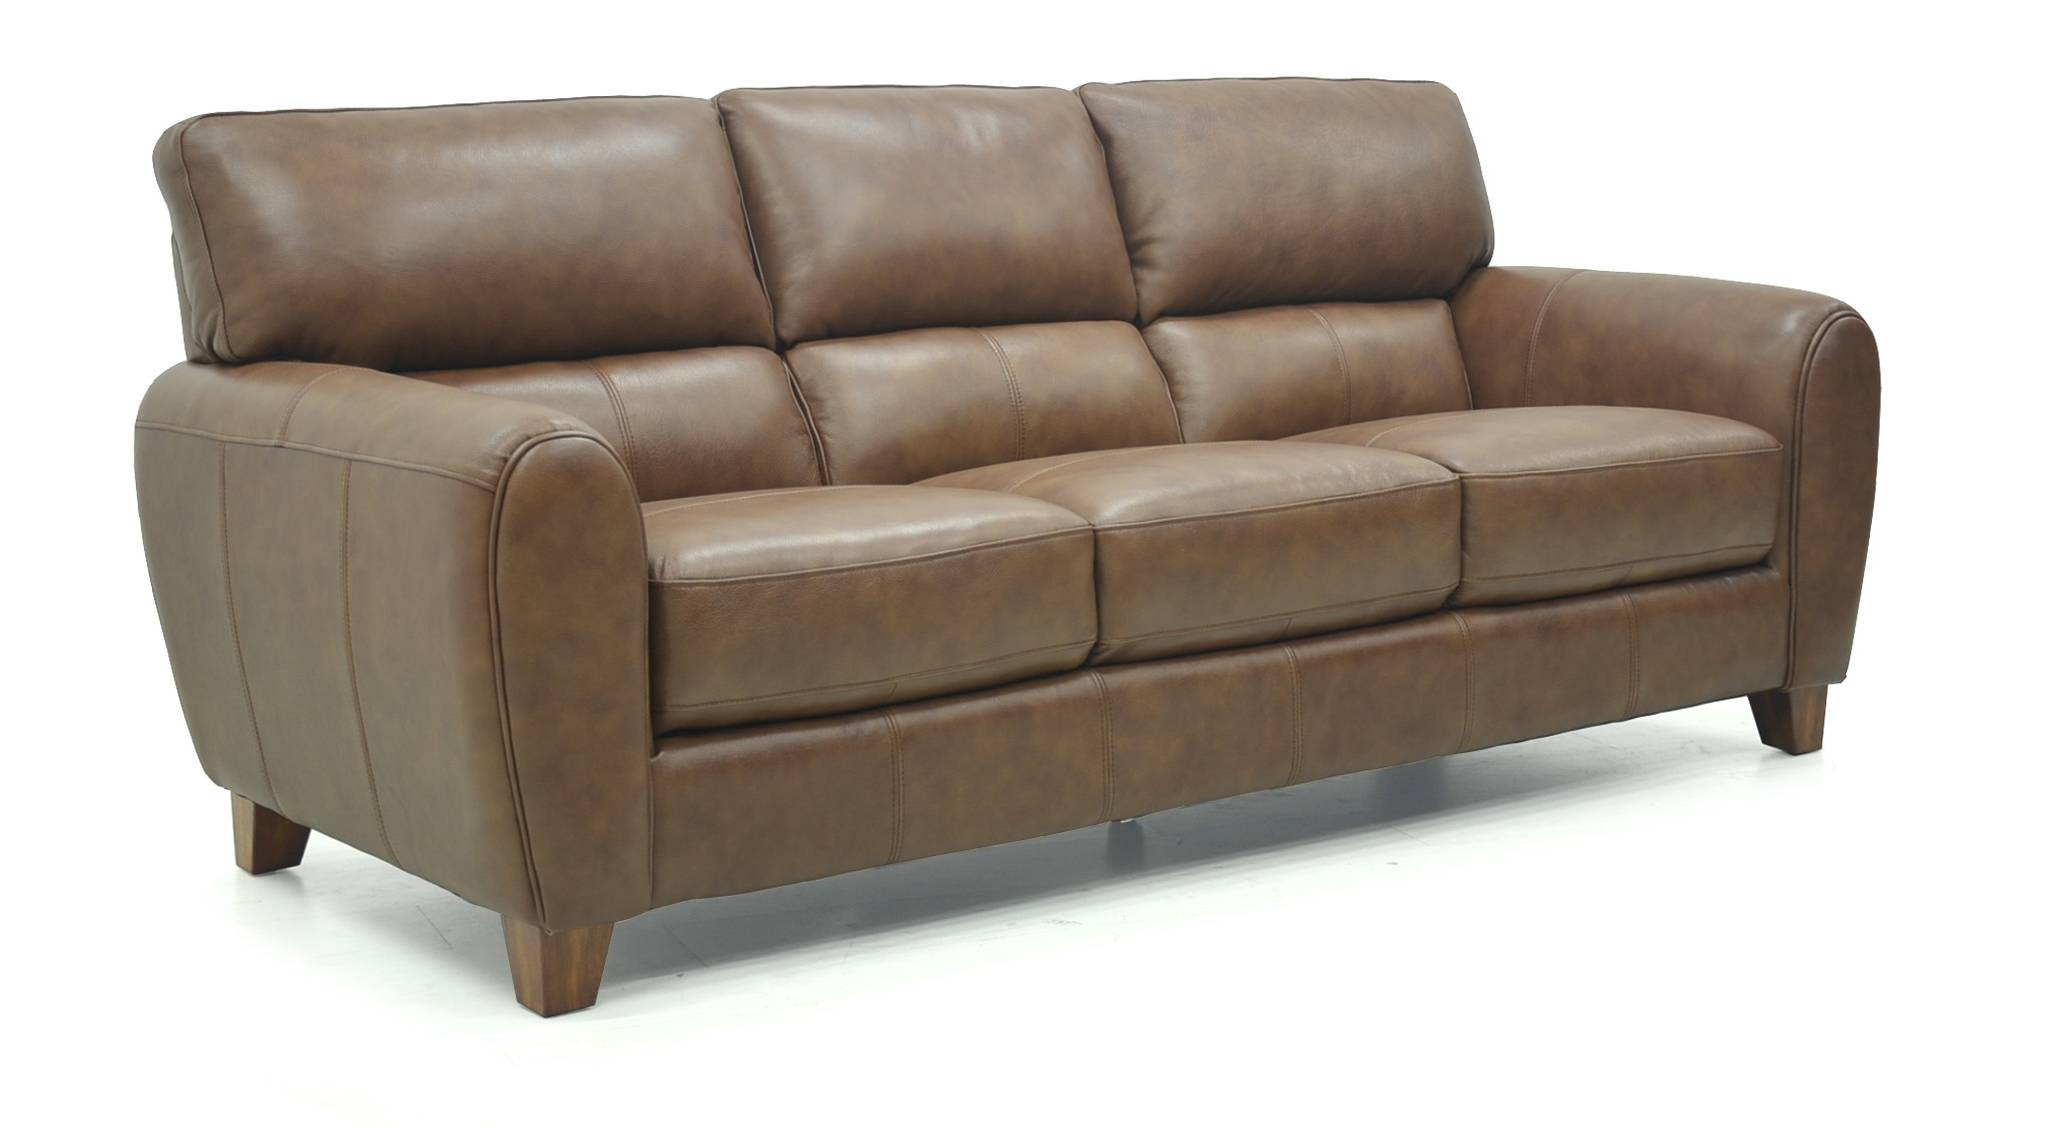 Canterbury Leather Sofa And Chair Range regarding Canterbury Leather Sofas (Image 9 of 30)